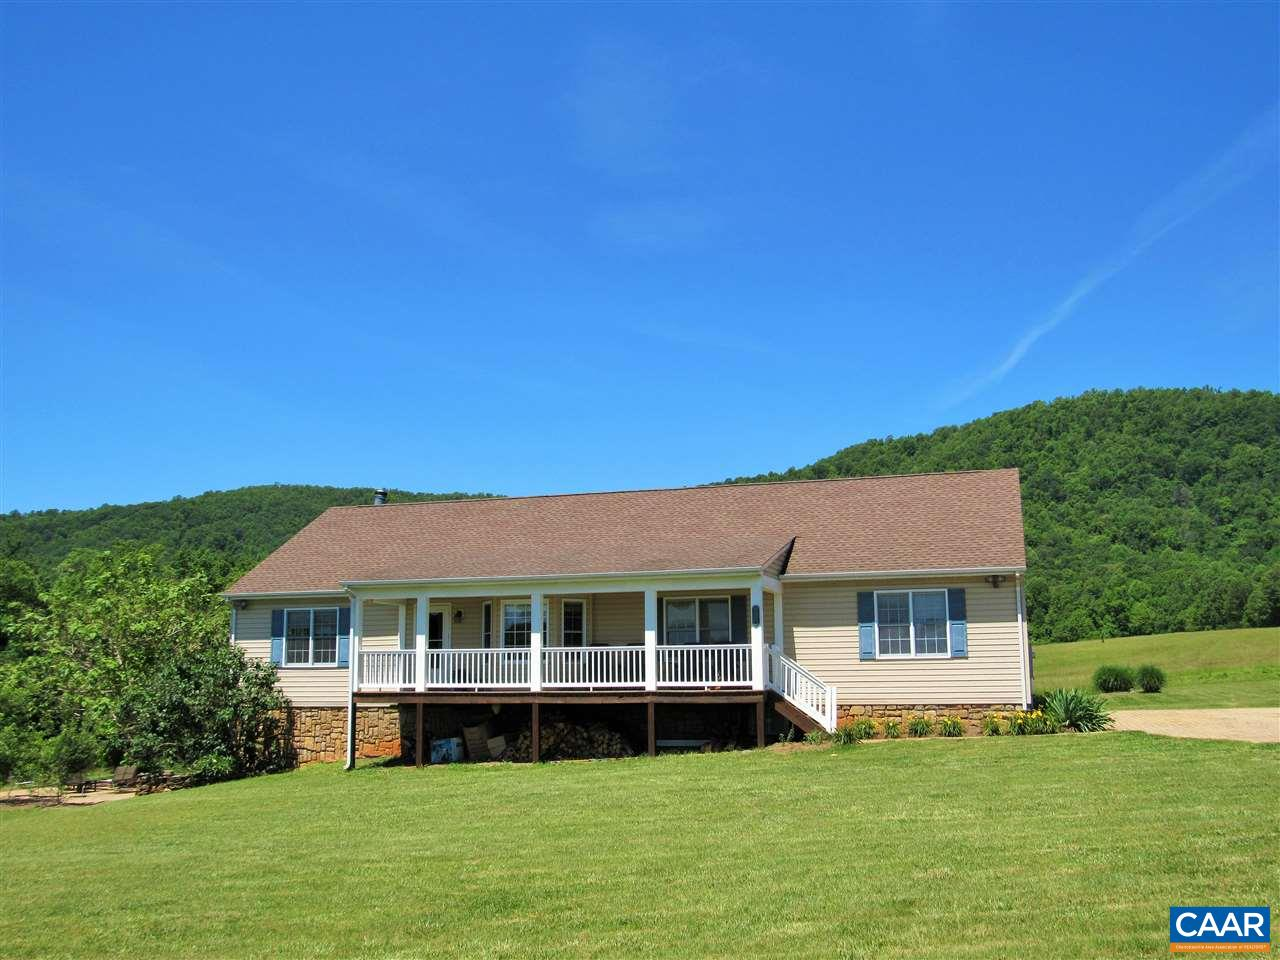 960A KENMORE RD, AMHERST, VA 24521